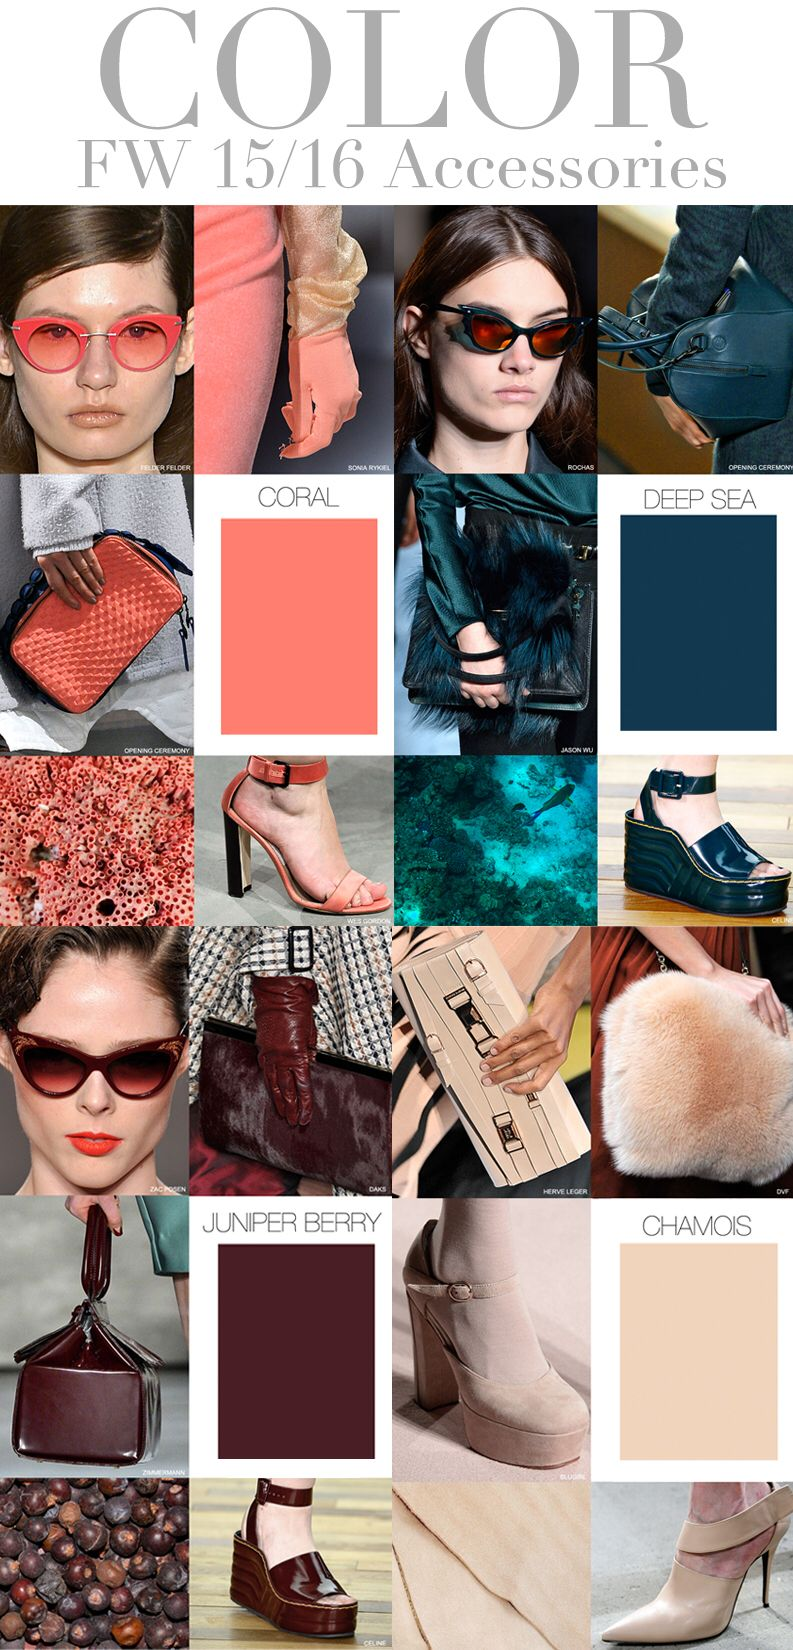 Trends. 2015/2016 | paris | Pinterest | Trends 2015 2016, Winter and ...